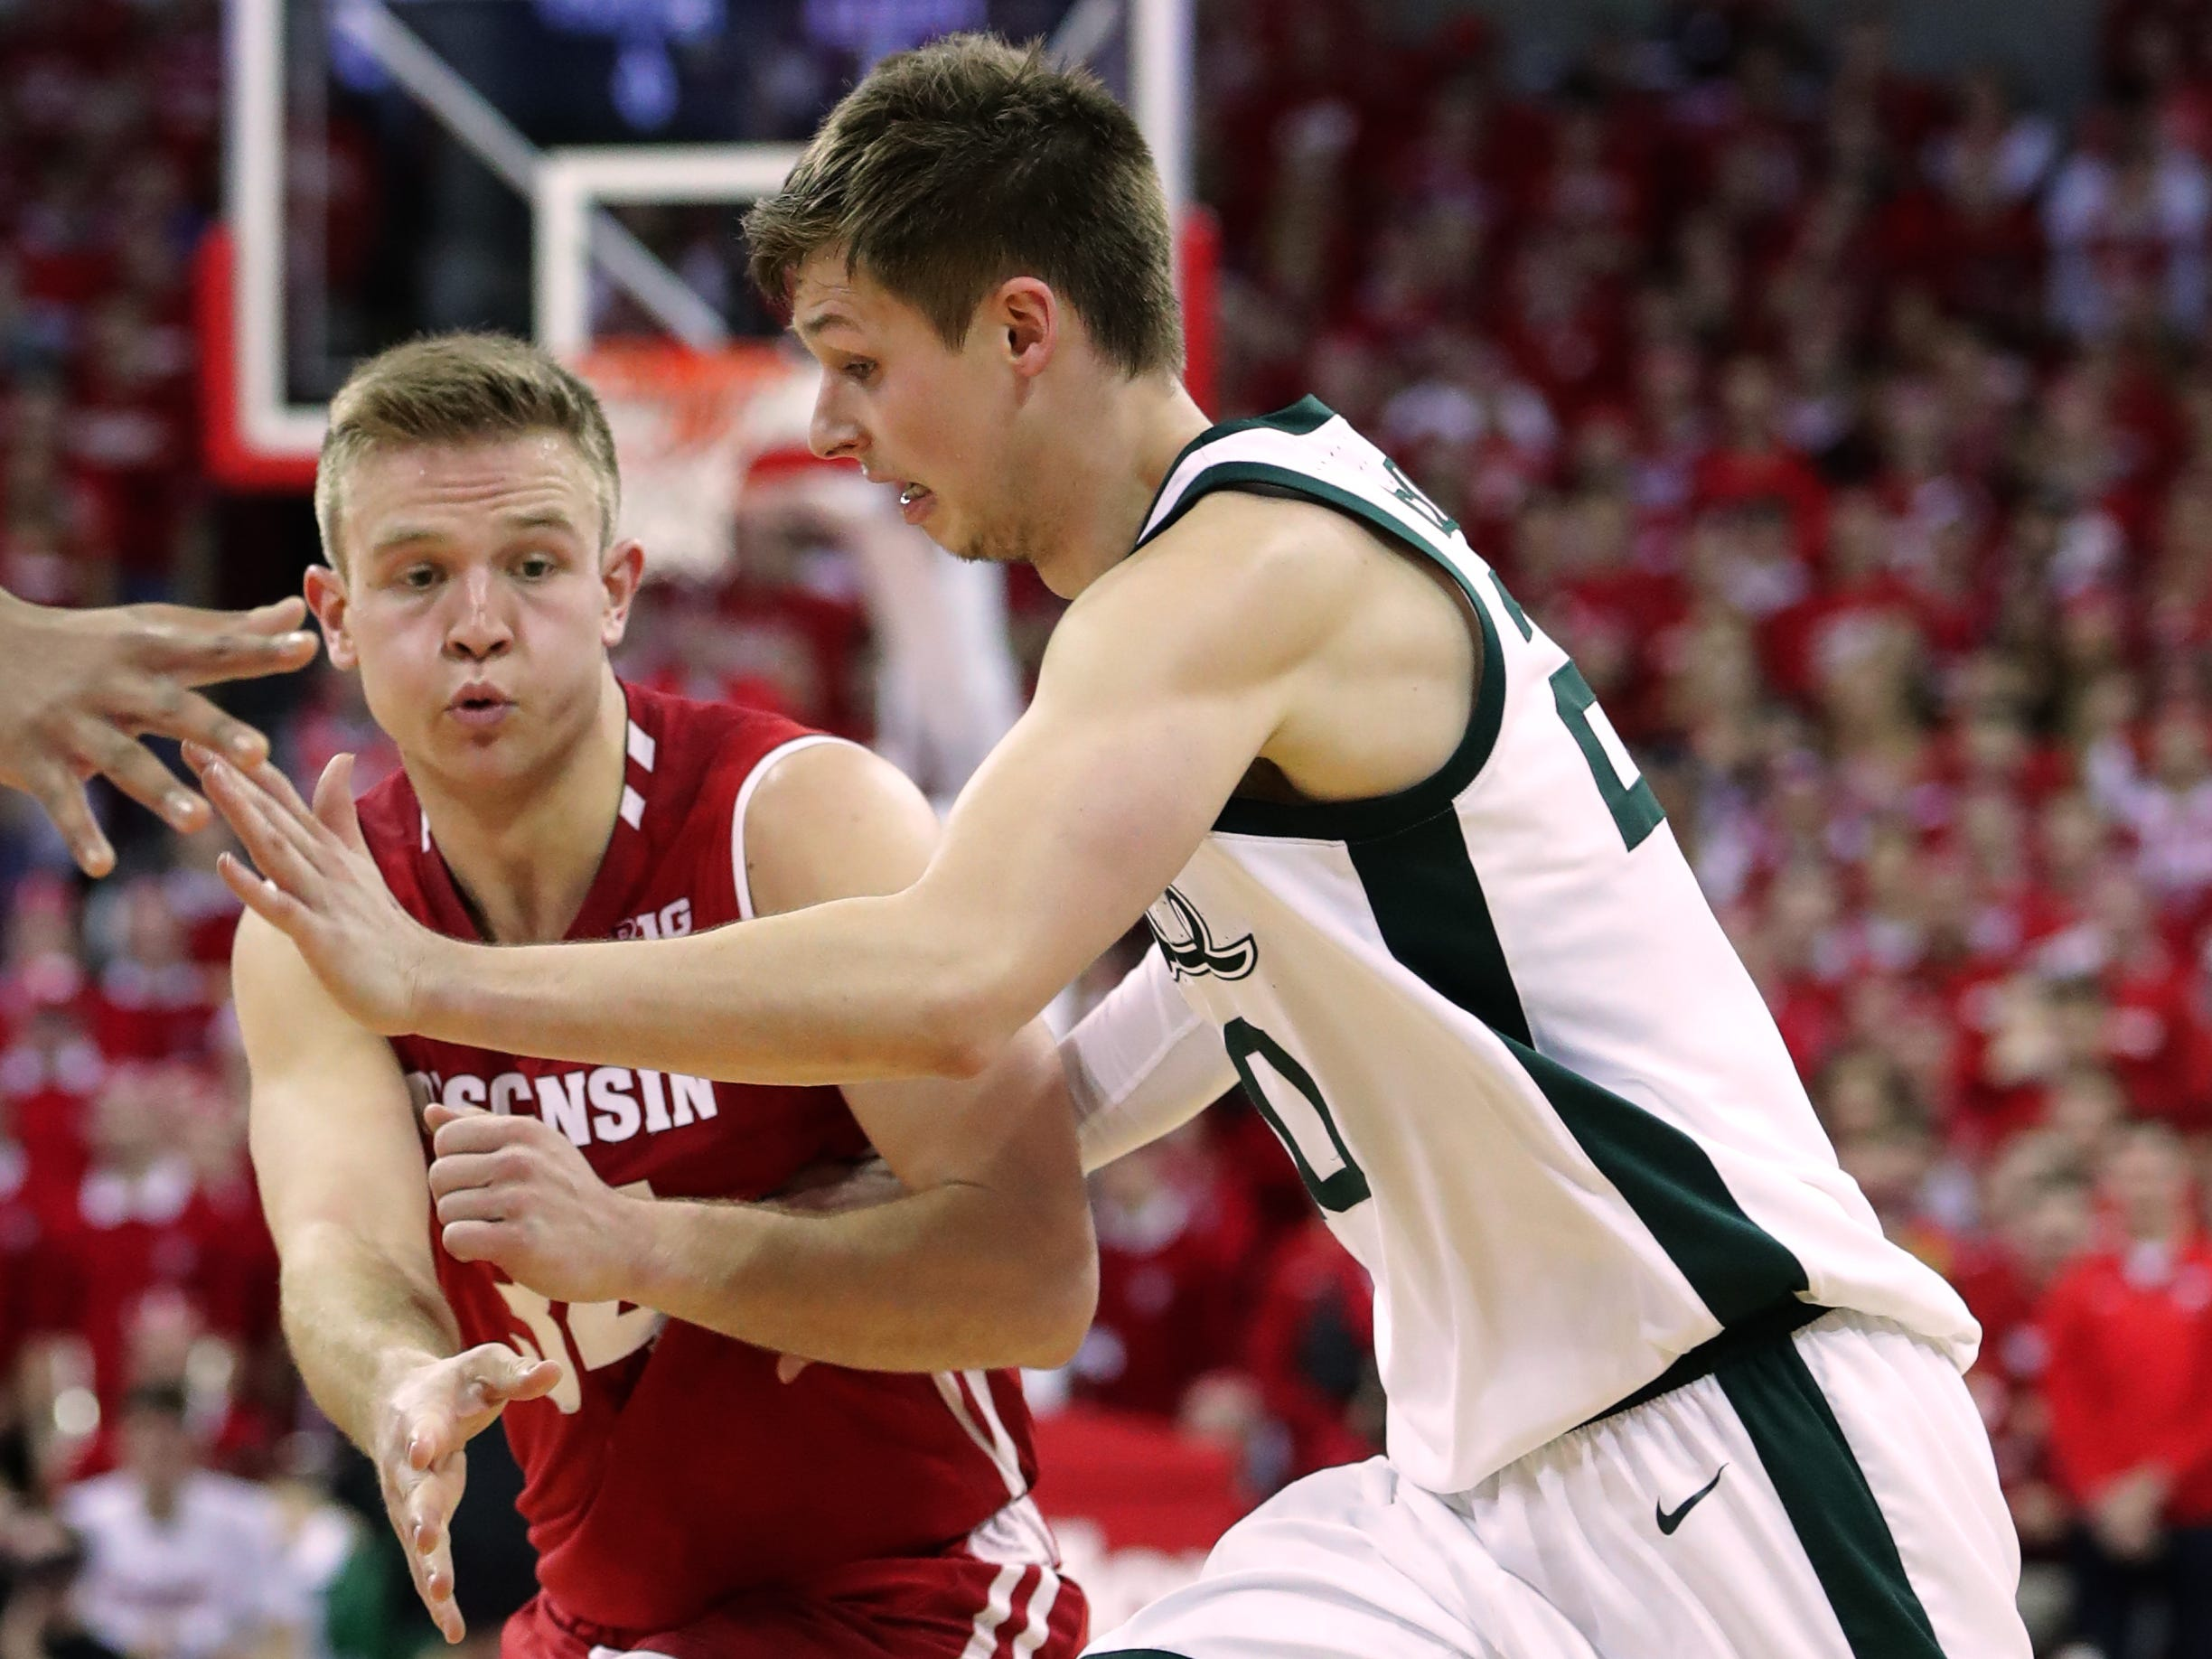 Wisconsin guard Brad Davison threads a bounce pass in front of Michigan State guard Matt McQuaid.